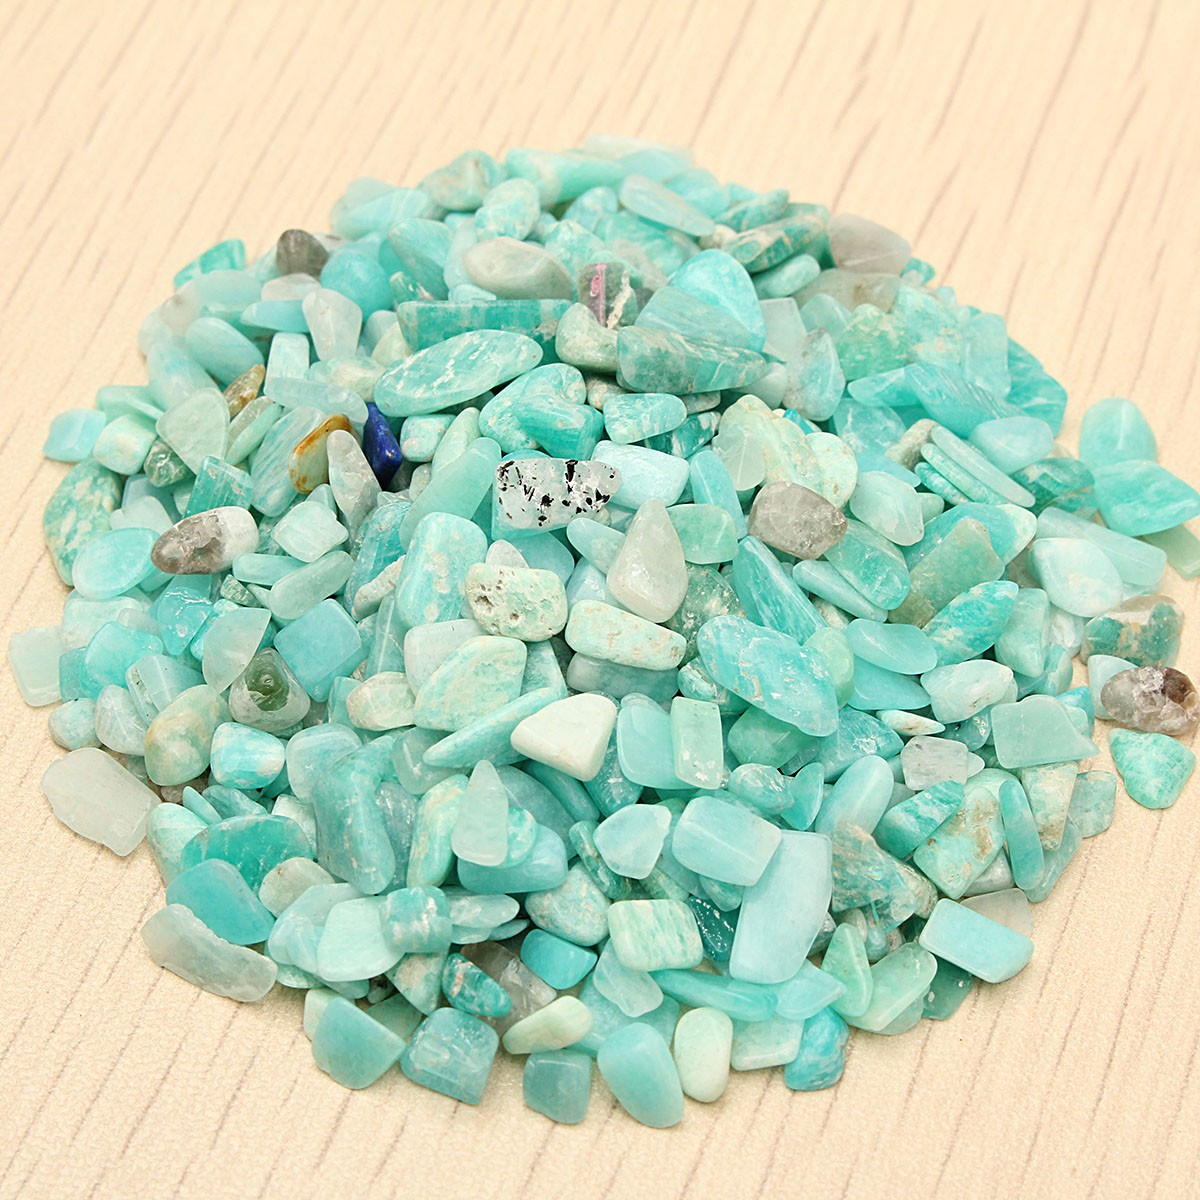 Garden Patio Natural Blue-green Amazonite Stone 50g 4-6mm Crystal Rough Rock Mineral Specimen Stones Decoration Ornament